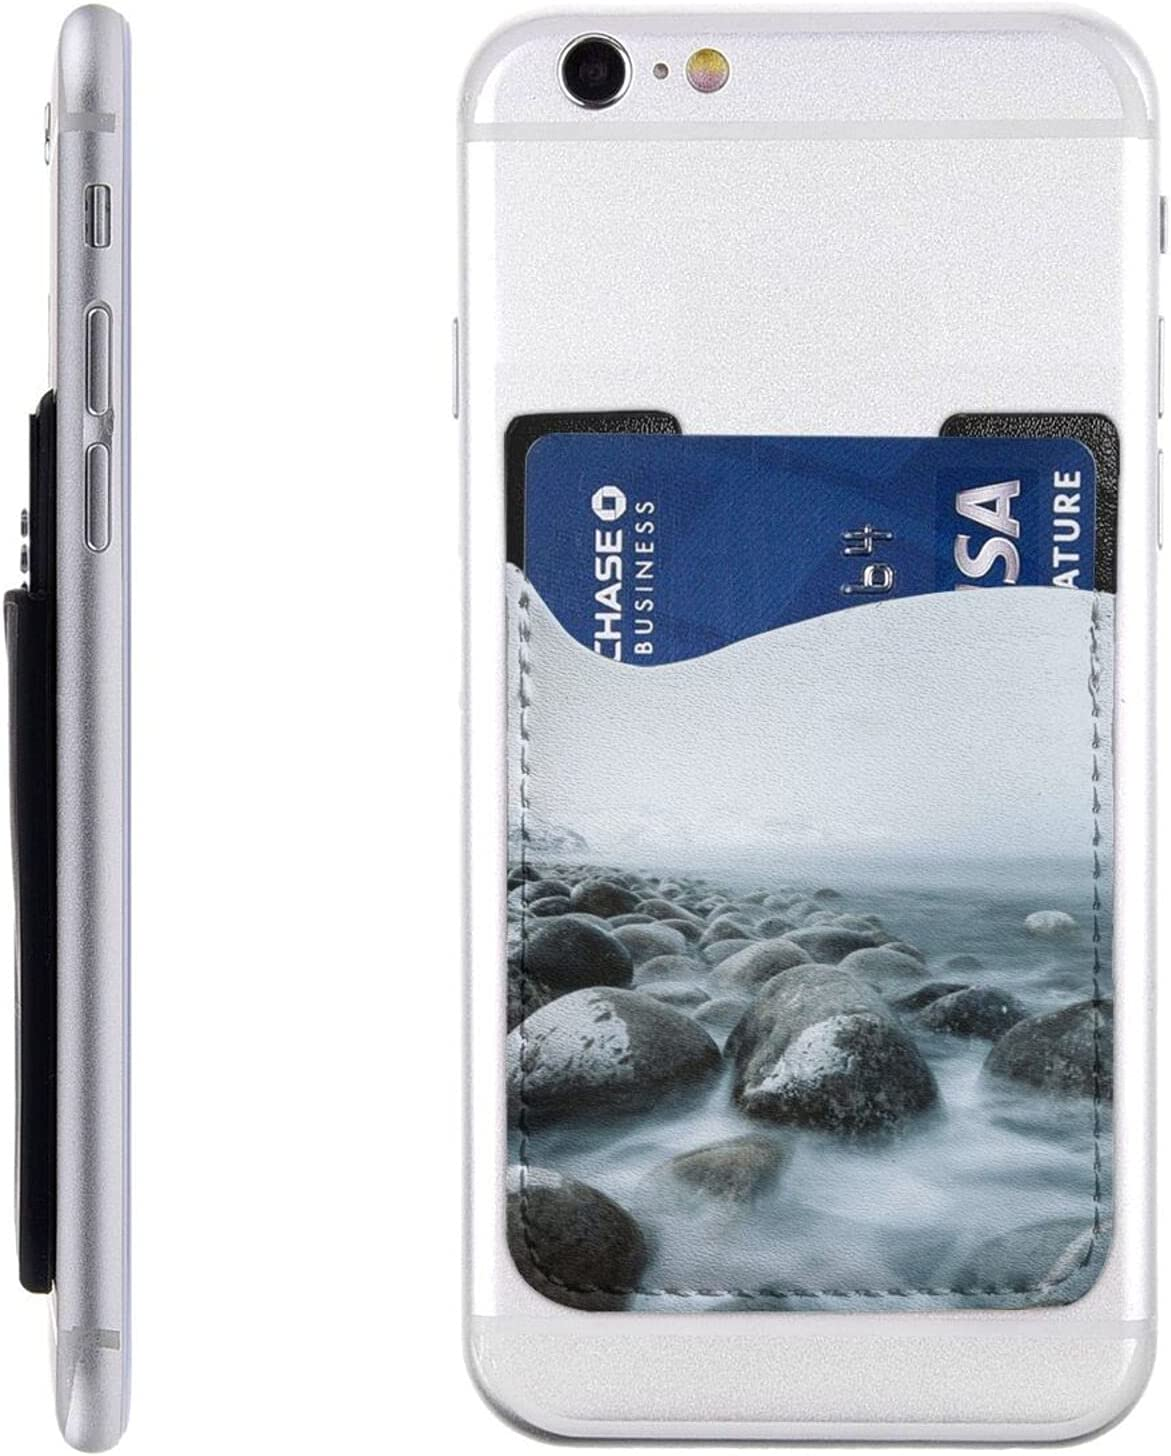 Sea Water The Rocks Snow Mountain Fashion Holder S Phone Cell free shipping Card